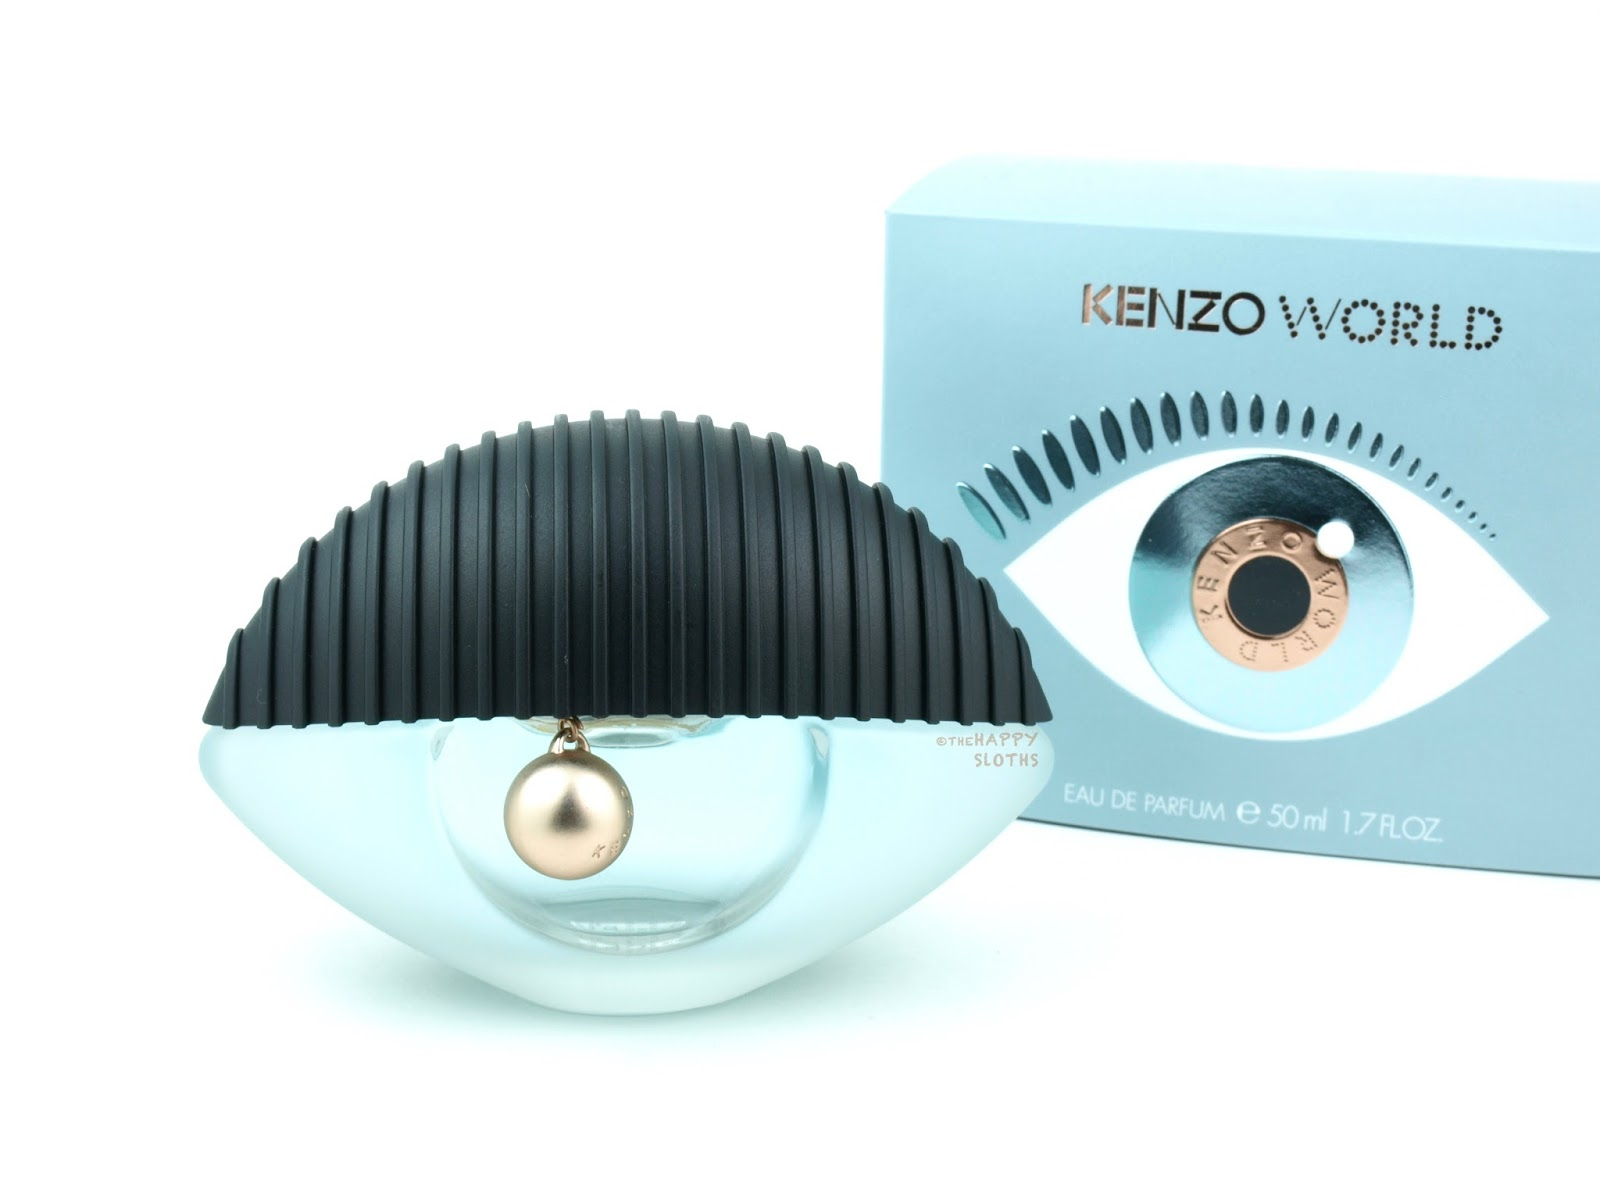 Kenzo World Eau de Parfum: Review